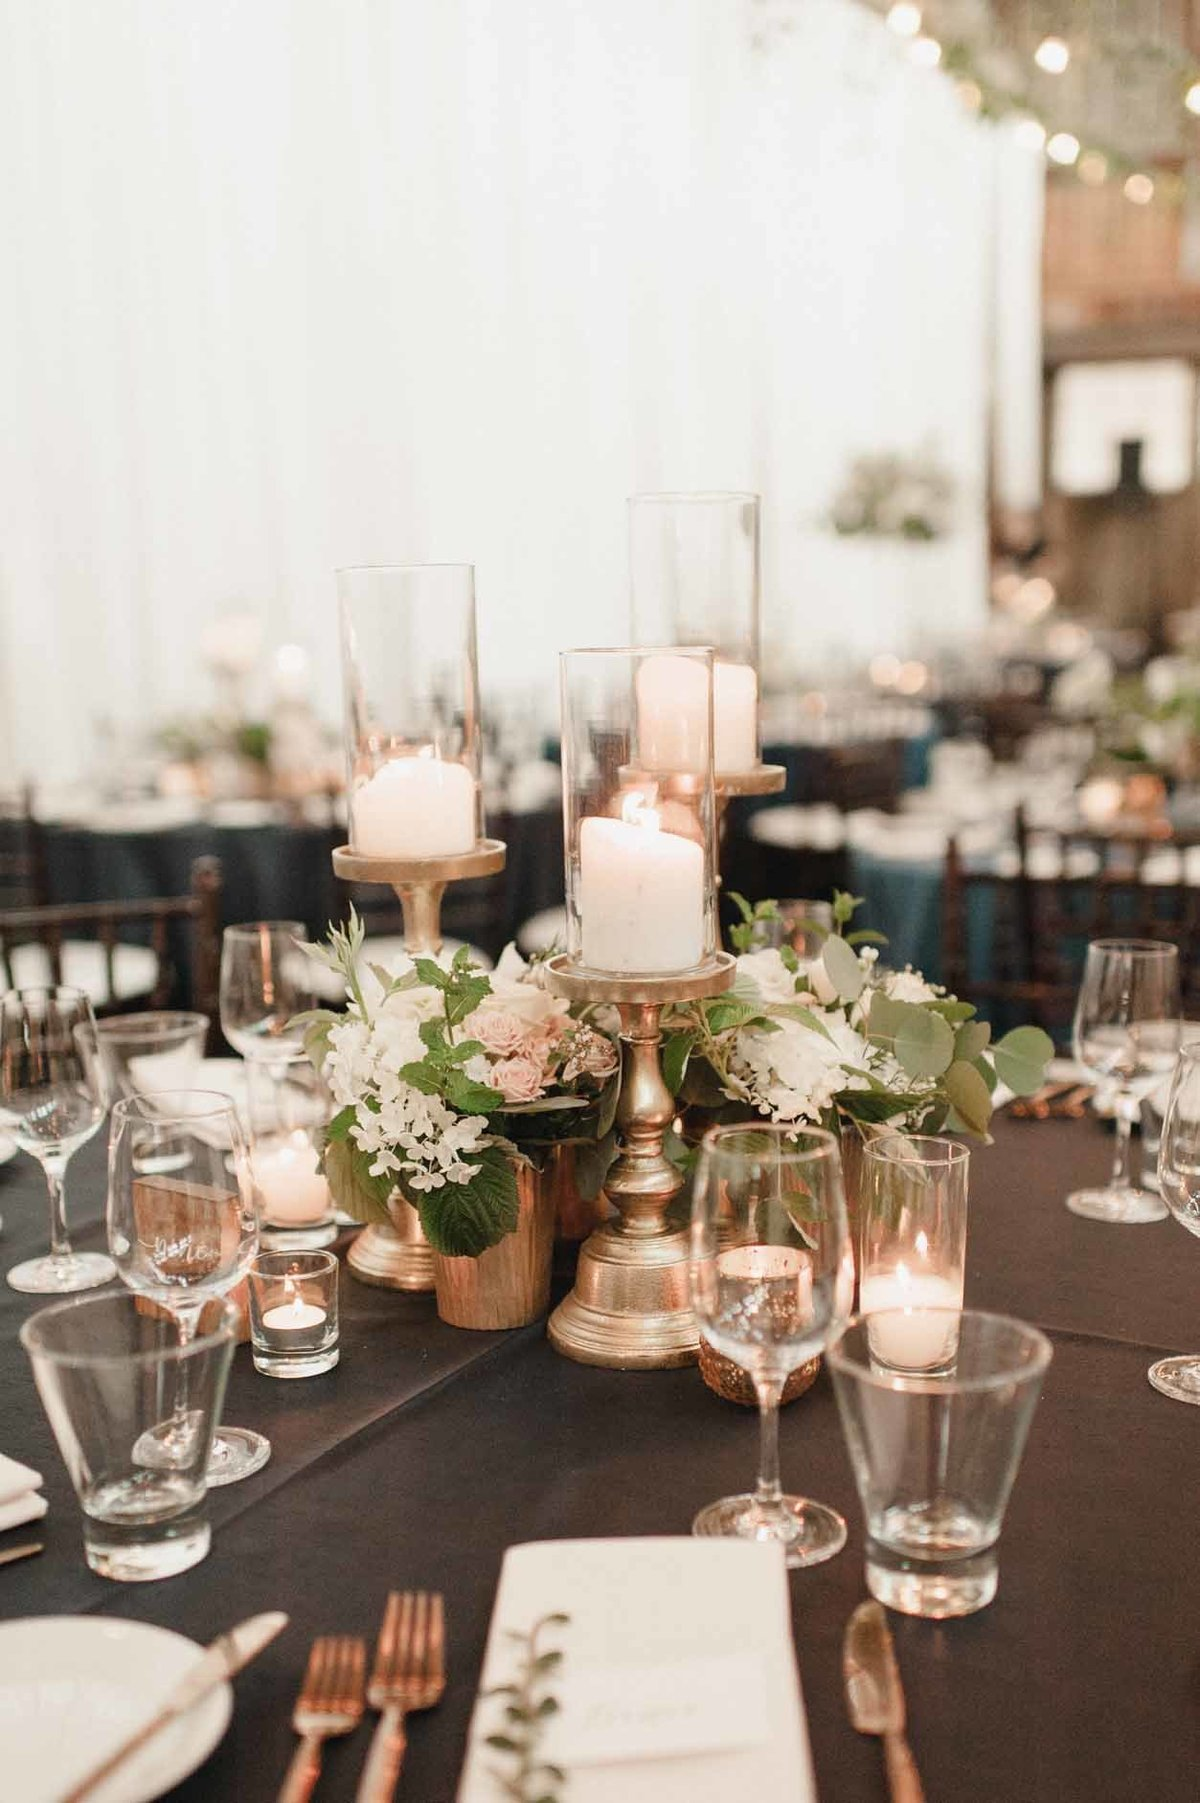 composite wedding centerpiece of gold hurricane candles and several small white and blush floral arrangements.